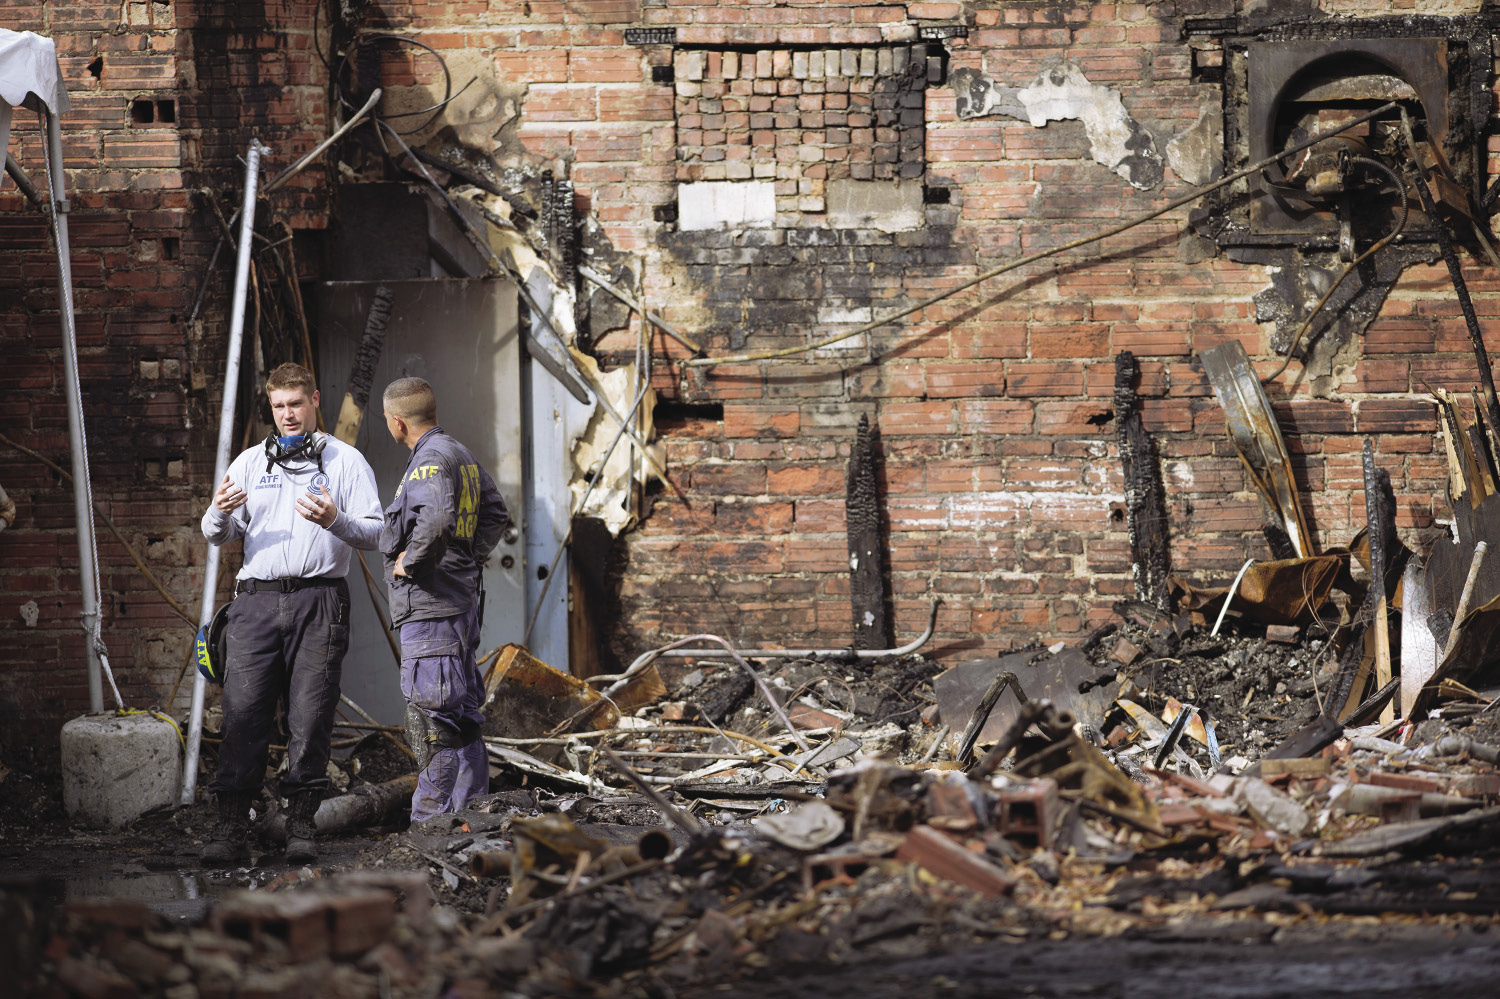 Fire investigators work at the scene of a 2015 fire that killed two firefighters in Missouri